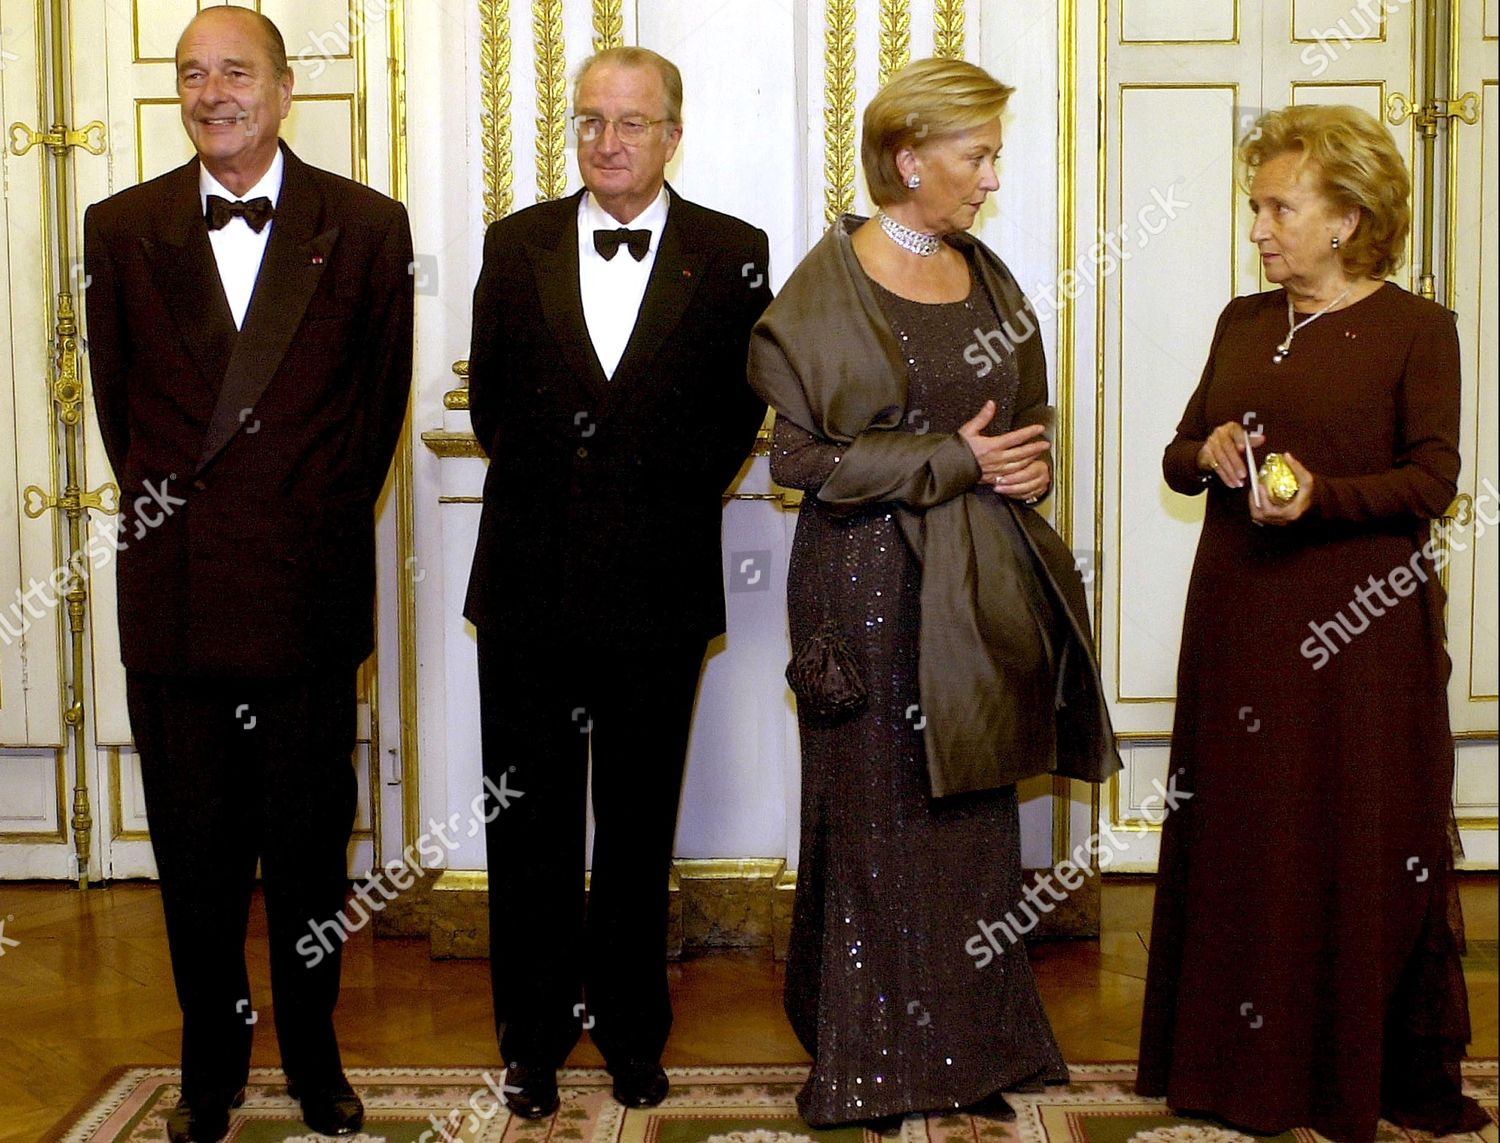 KING ALBERT AND QUEEN PAOLA STATE VISIT TO PARIS, FRANCE - 27 OCT 2003: стоковое фото